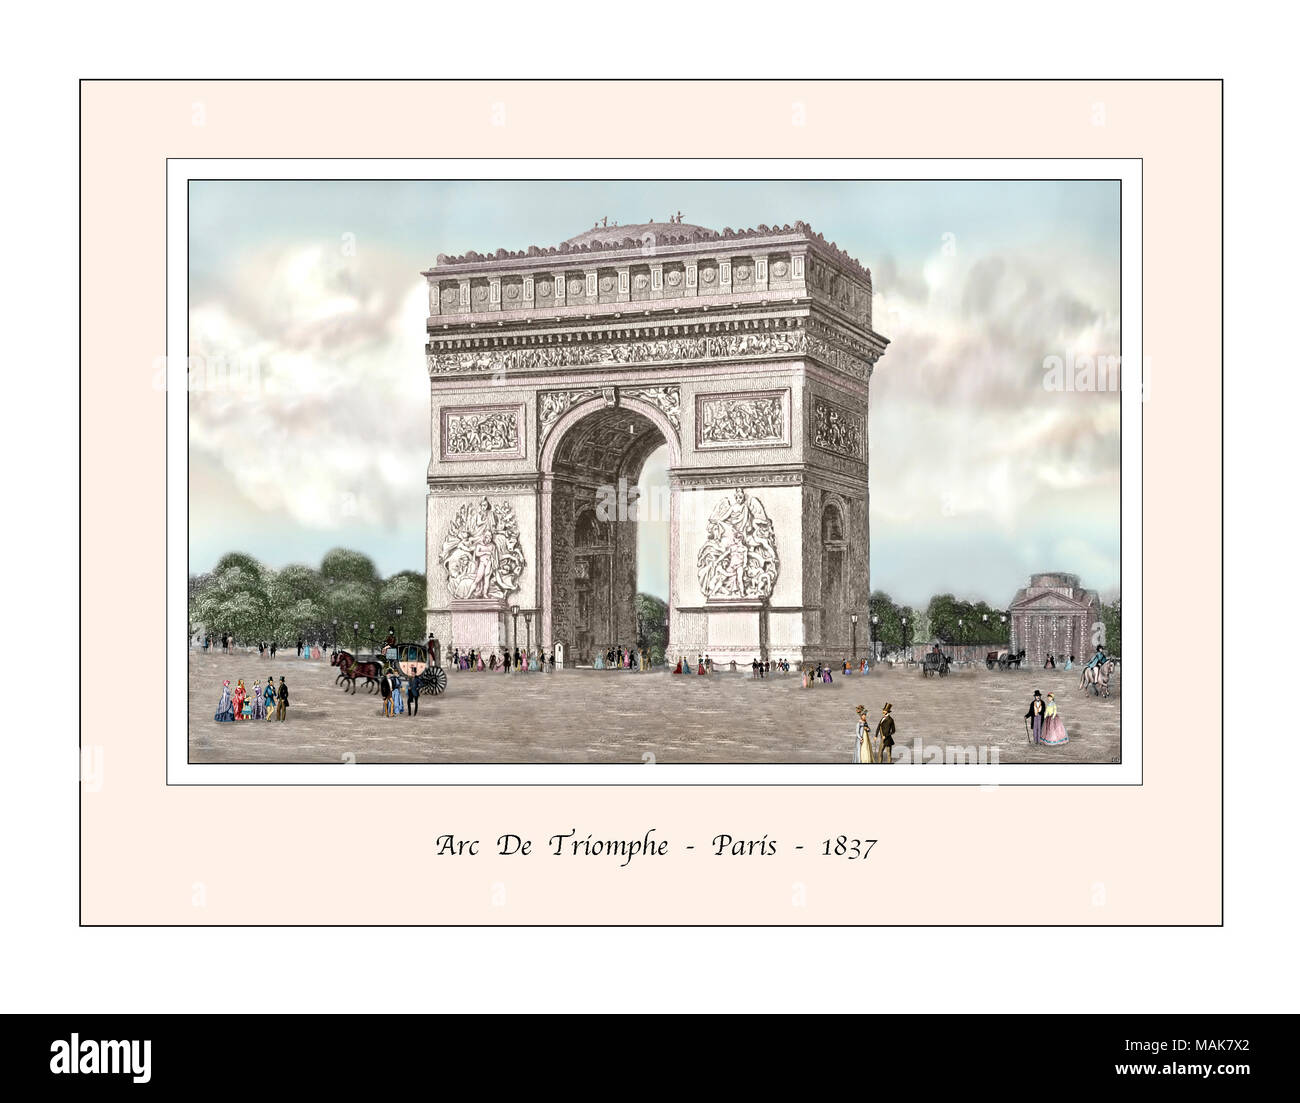 Arc de Triomphe Paris Original Design from a 19th century Engraving - Stock Image